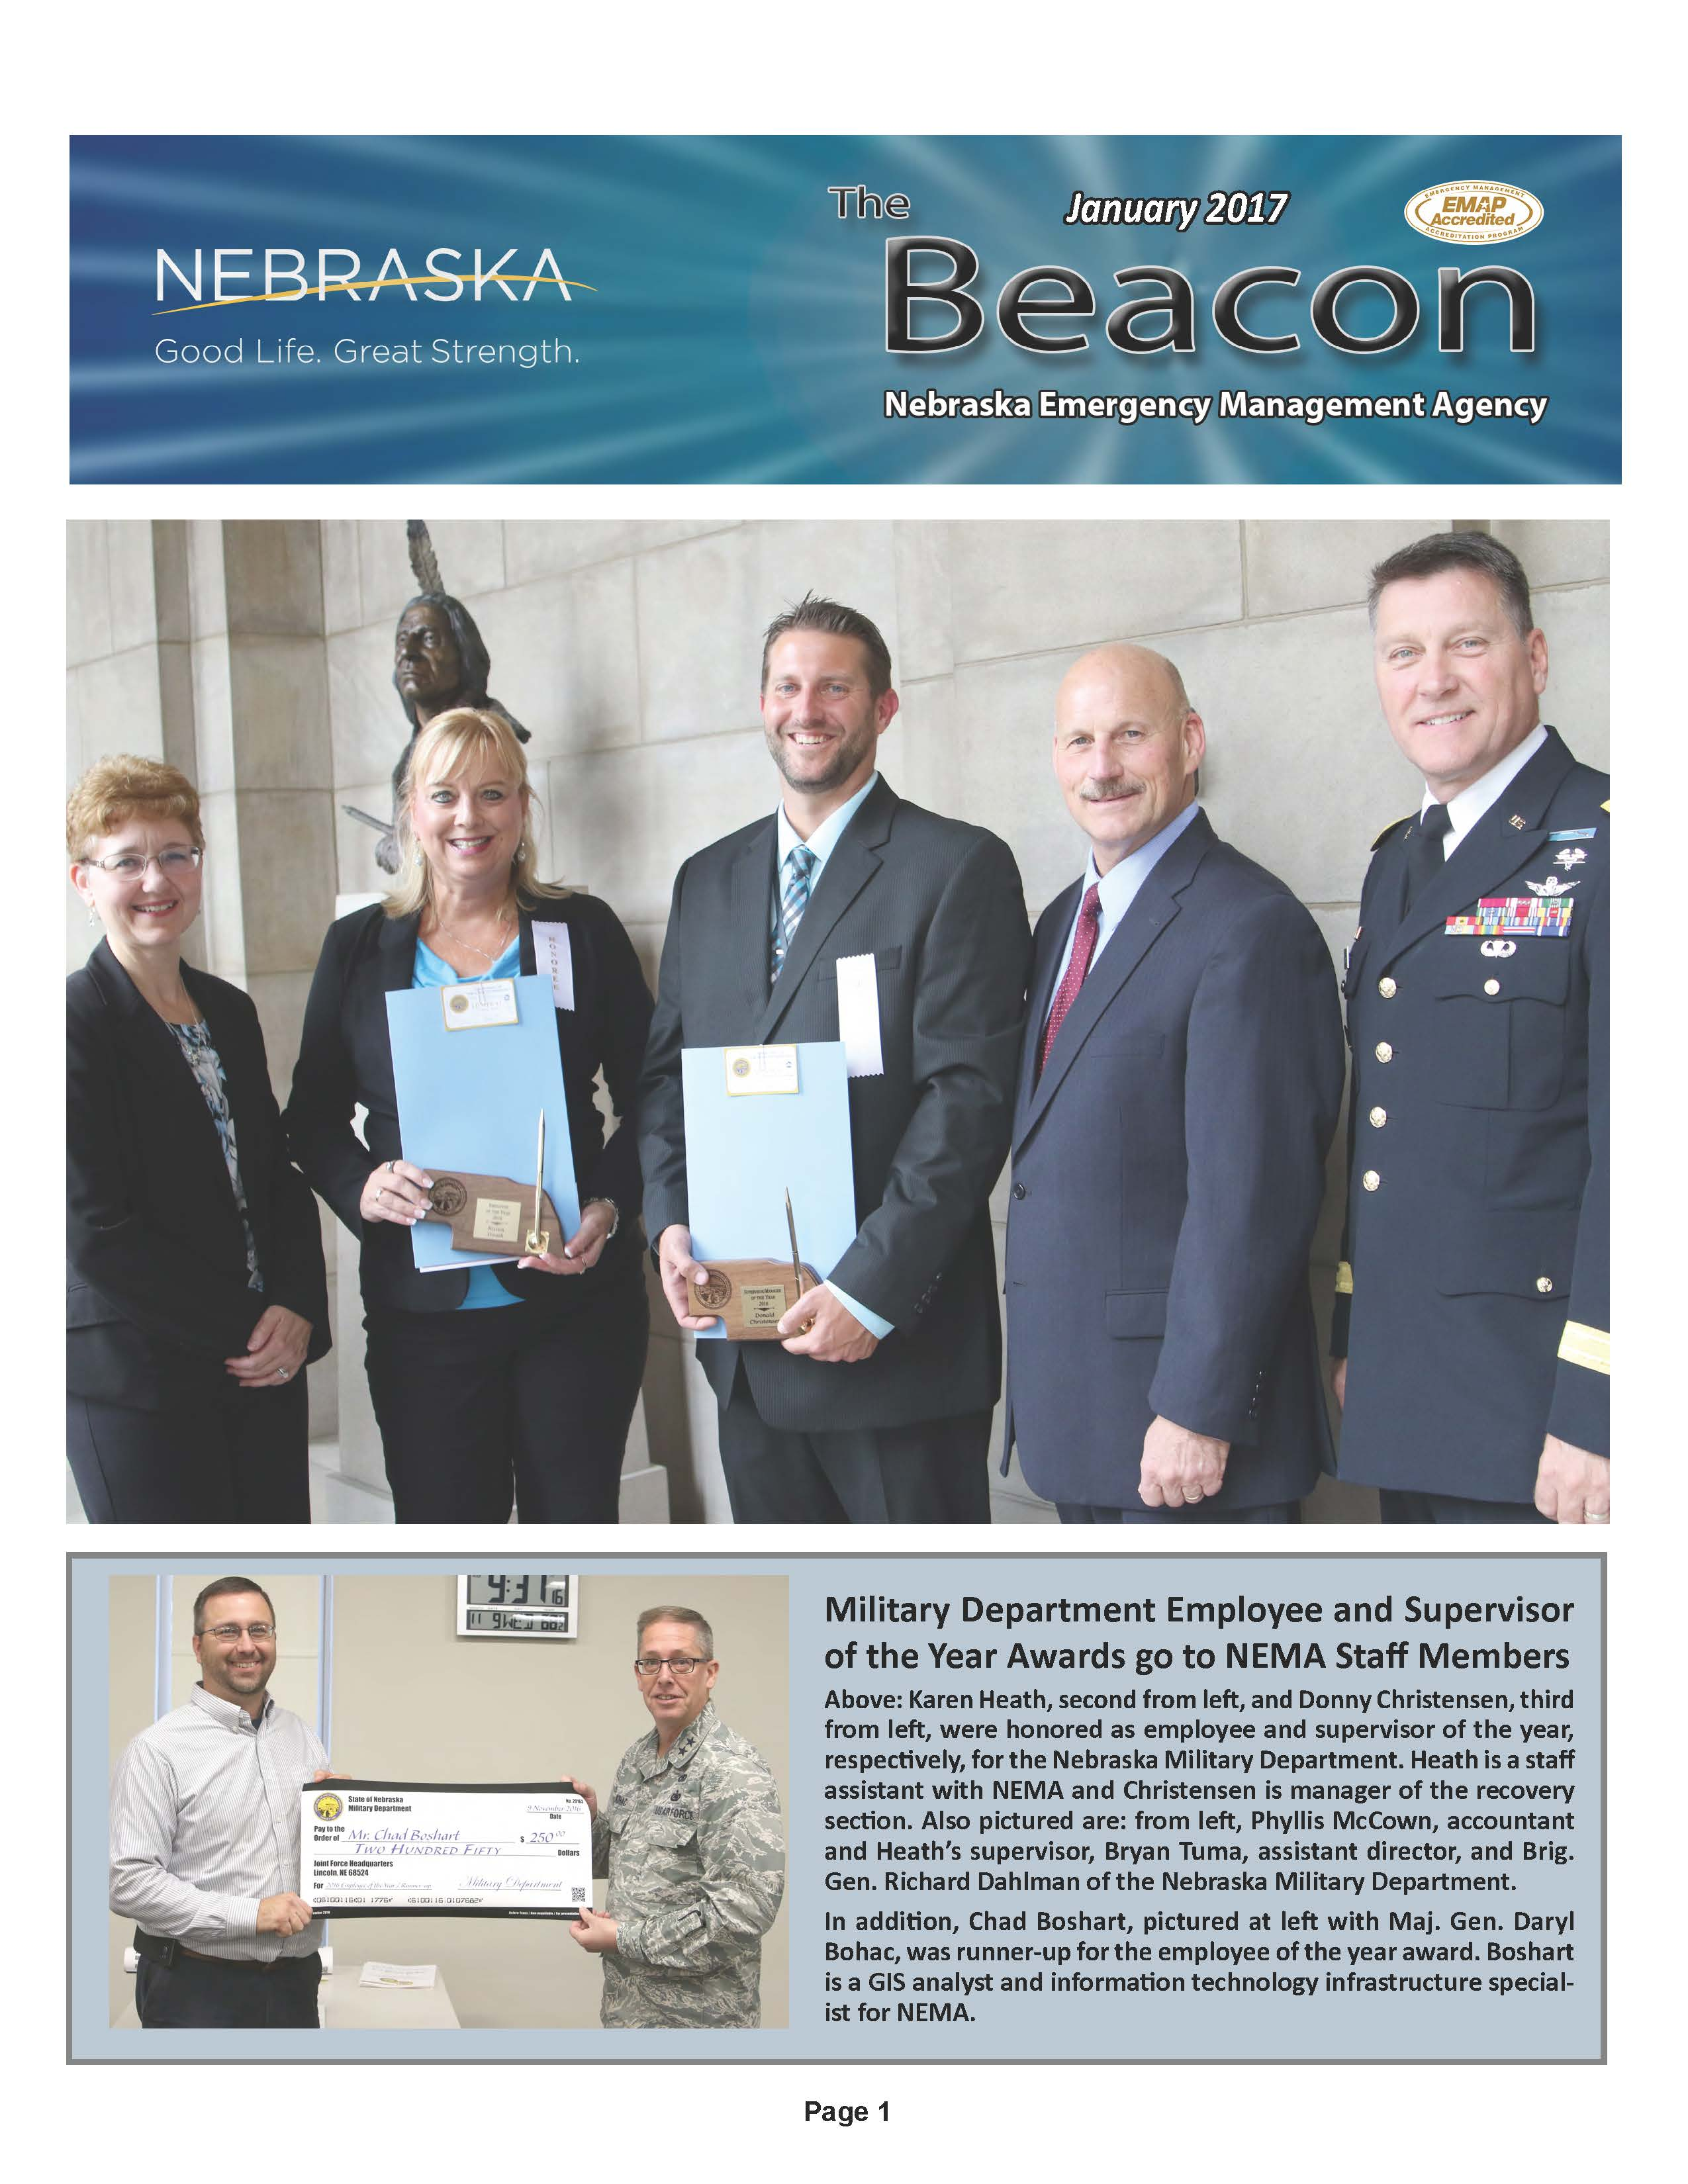 January 2017 Cover of the Beacon